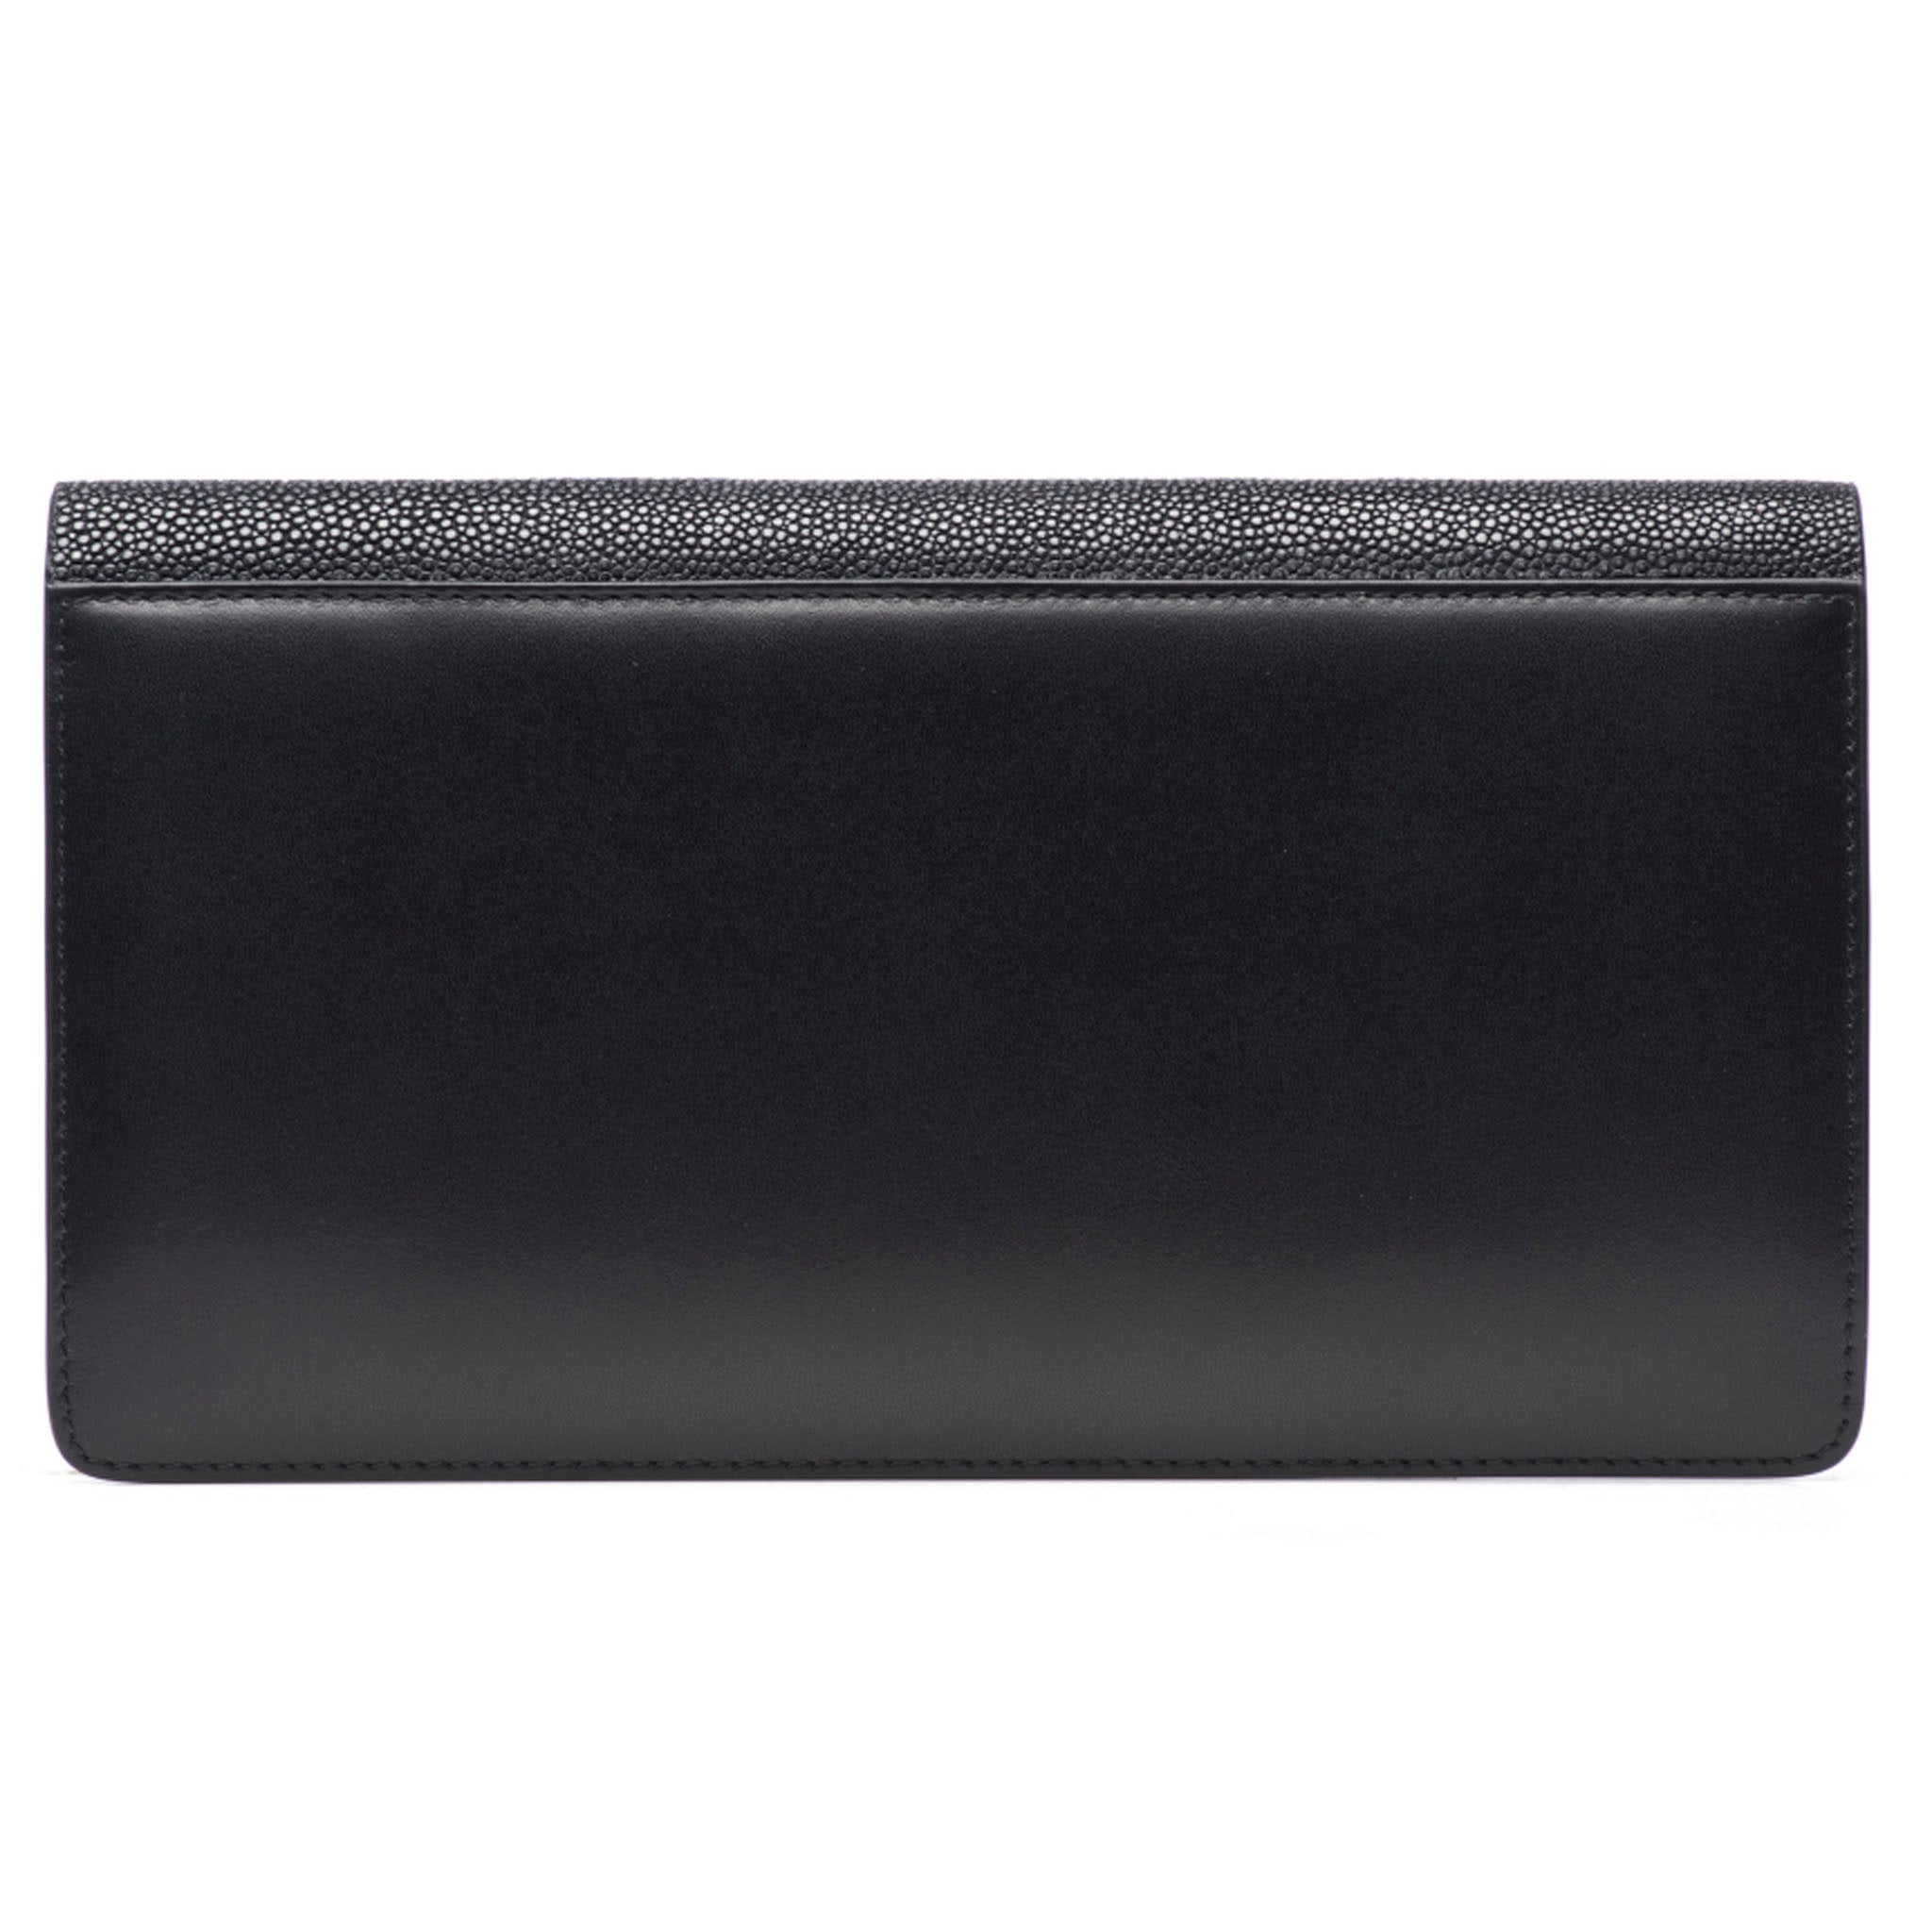 Black Shagreen Fold Front Wallet Clutch  Back View Bea II -Vivo Direct